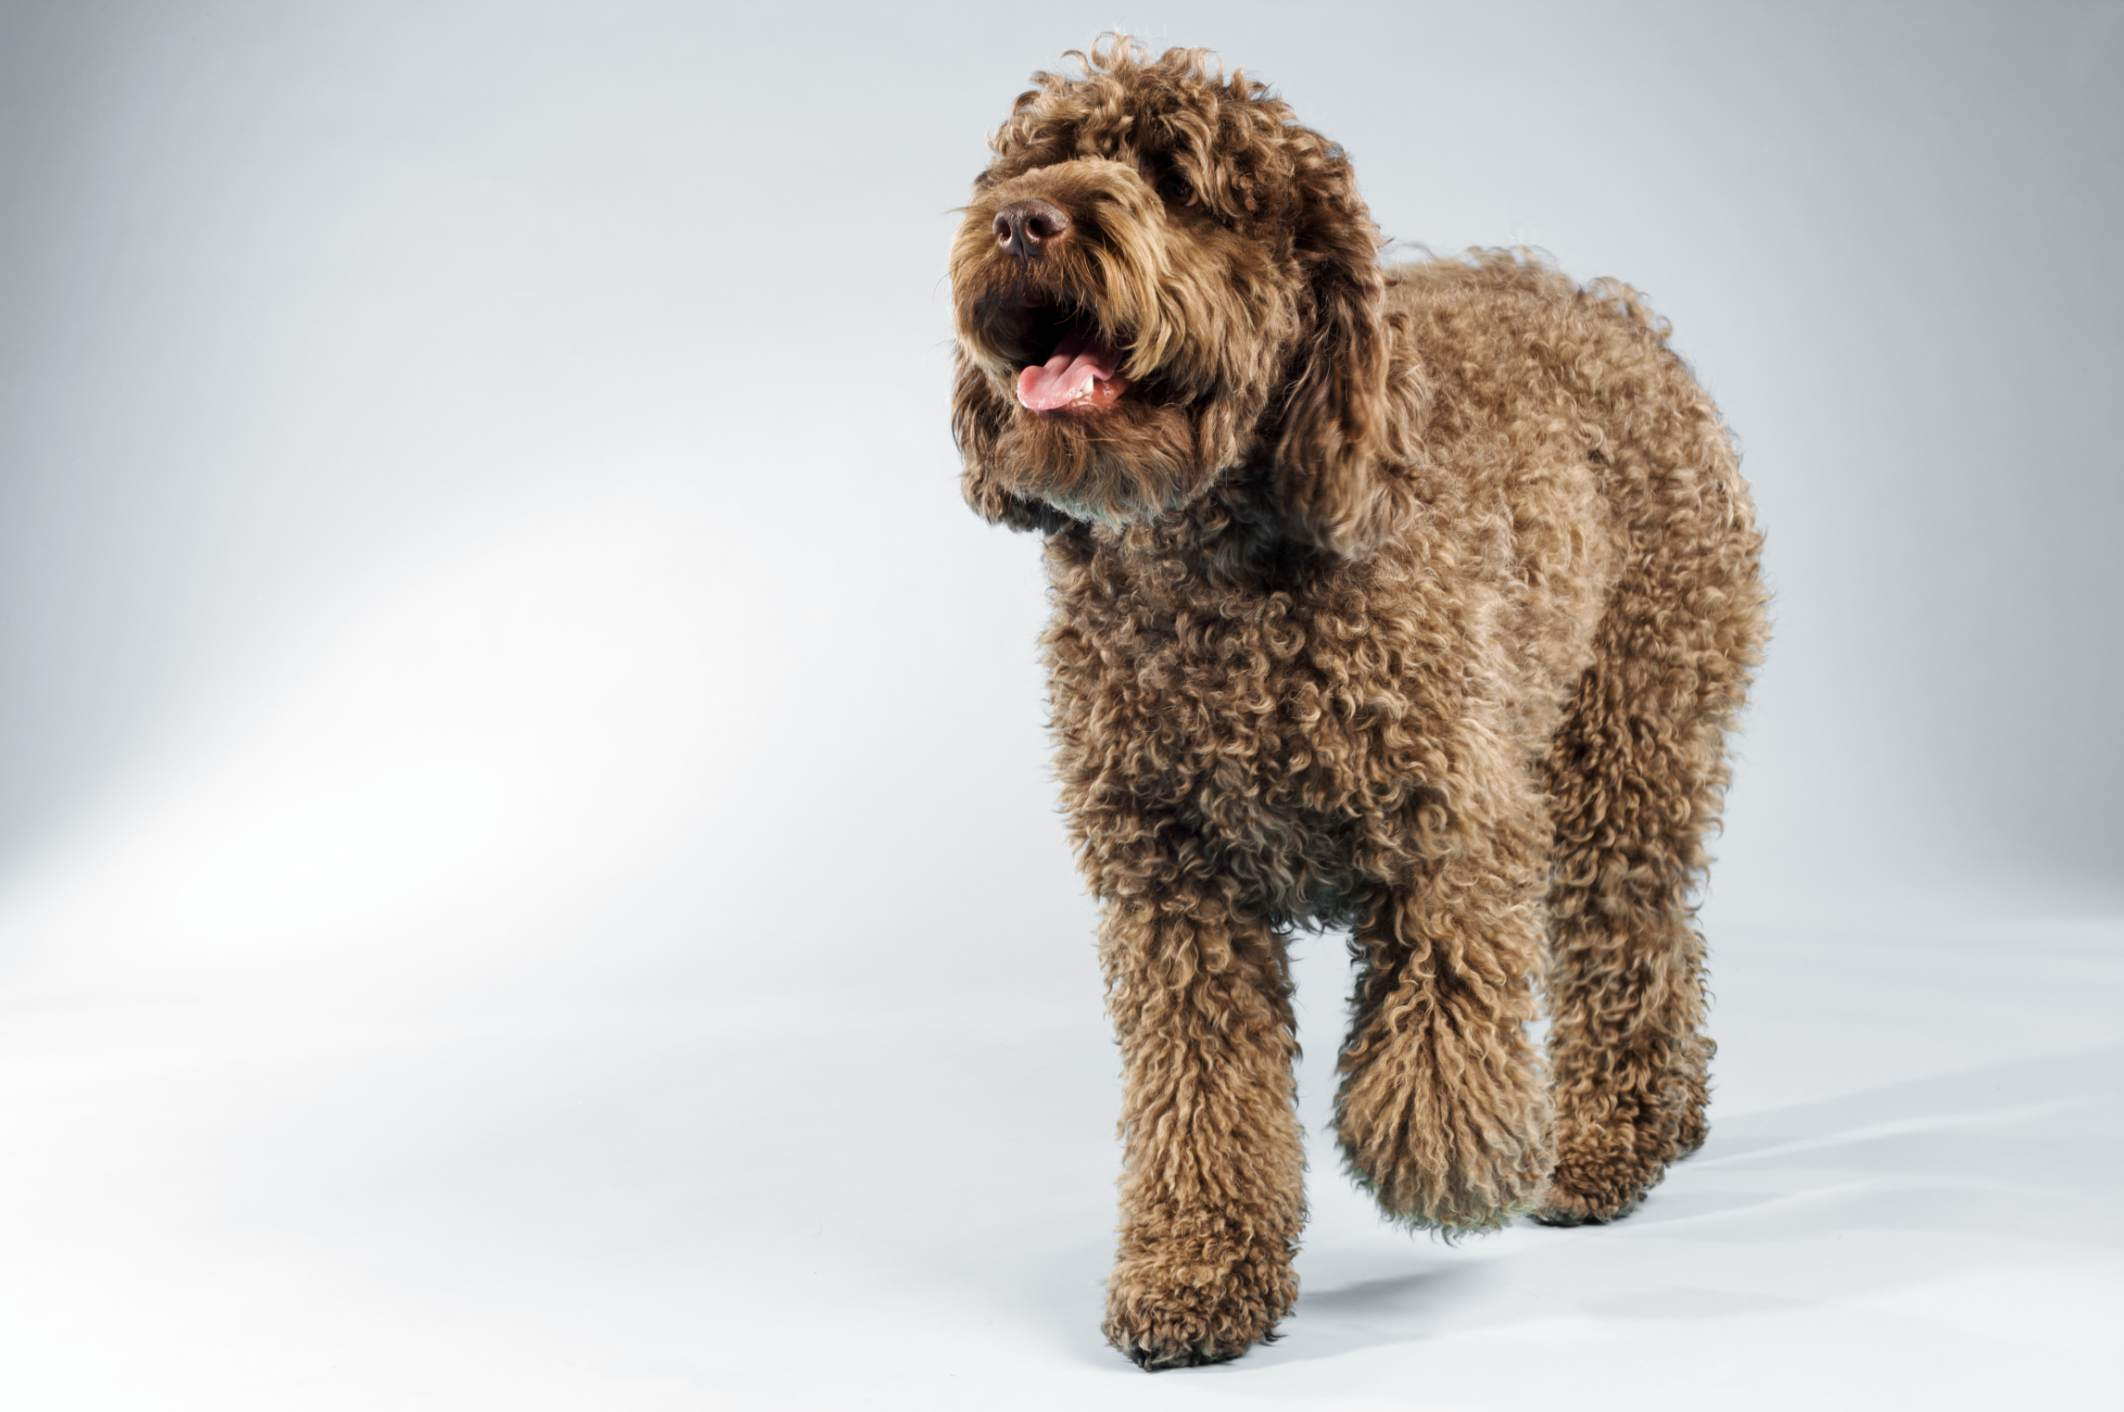 Labradoodle breed is a product of artificial selection